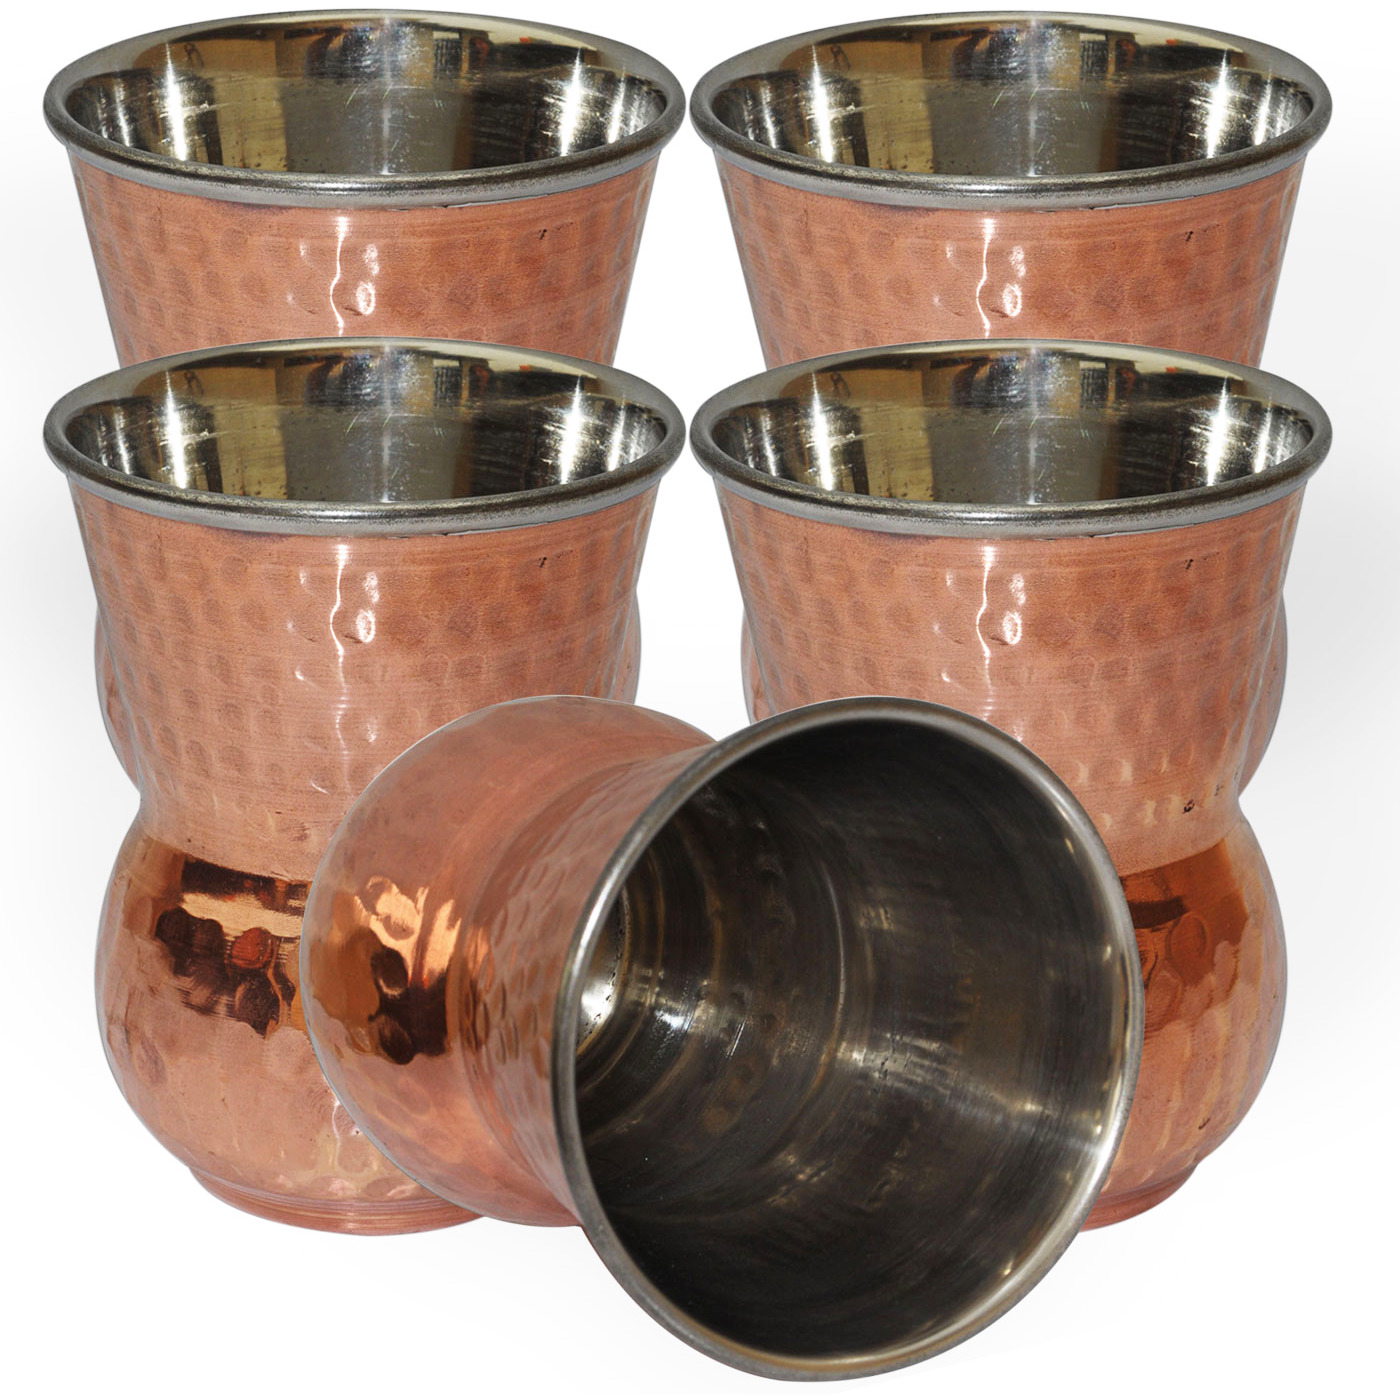 Set of 5 - Prisha India Craft B. Copper Muglai Matka Glass Inside Stainless Steel Hammered Style Drinkware Tumbler Handmade Copper Cups - Traveller's Copper Mug